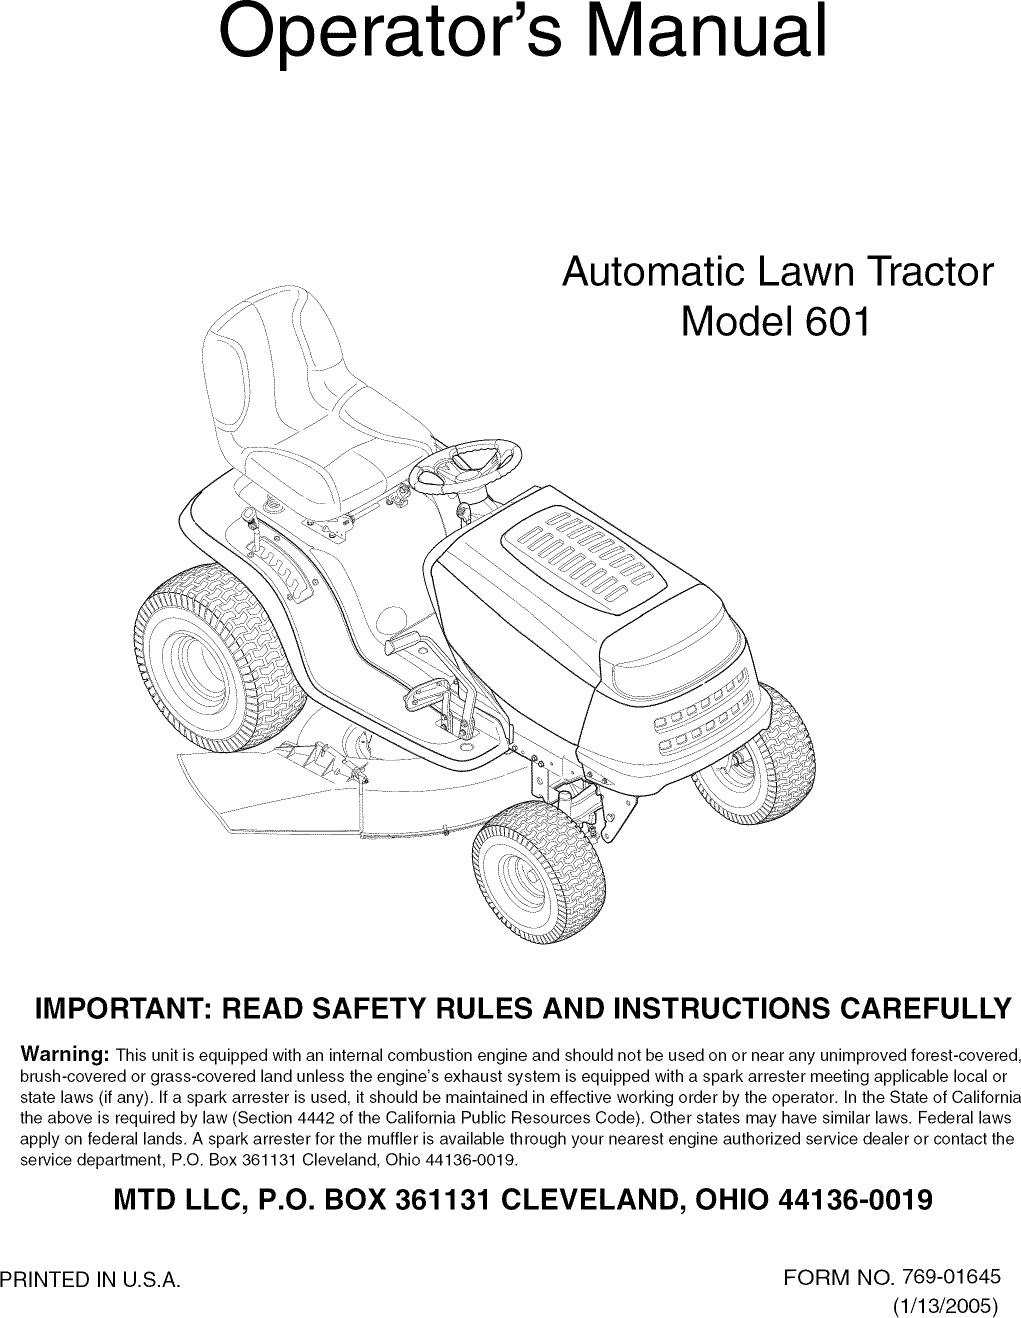 "Mtd Lawn Mower Wiring Diagram on mtd riding lawn mowers, yard machine lawn tractor diagram, mtd mower belts, lawn mower key switch diagram, snapper riding mower wiring diagram, 38"" mtd belt routing diagram, lawn mower electrical diagram, murray lawn mower diagram, lawn tractor wiring diagram, mtd riding mower diagram, power kraft riding mower diagram, dr trimmer mower parts diagram, husky lawn mower parts diagram, bolens lawn tractor diagram, mtd 16.5 ignition switch diagram, mtd mower parts diagram, mtd snow blower wiring diagram, mtd rear tine tiller parts diagram, riding lawn mower diagram, craftsman riding mower electrical diagram,"